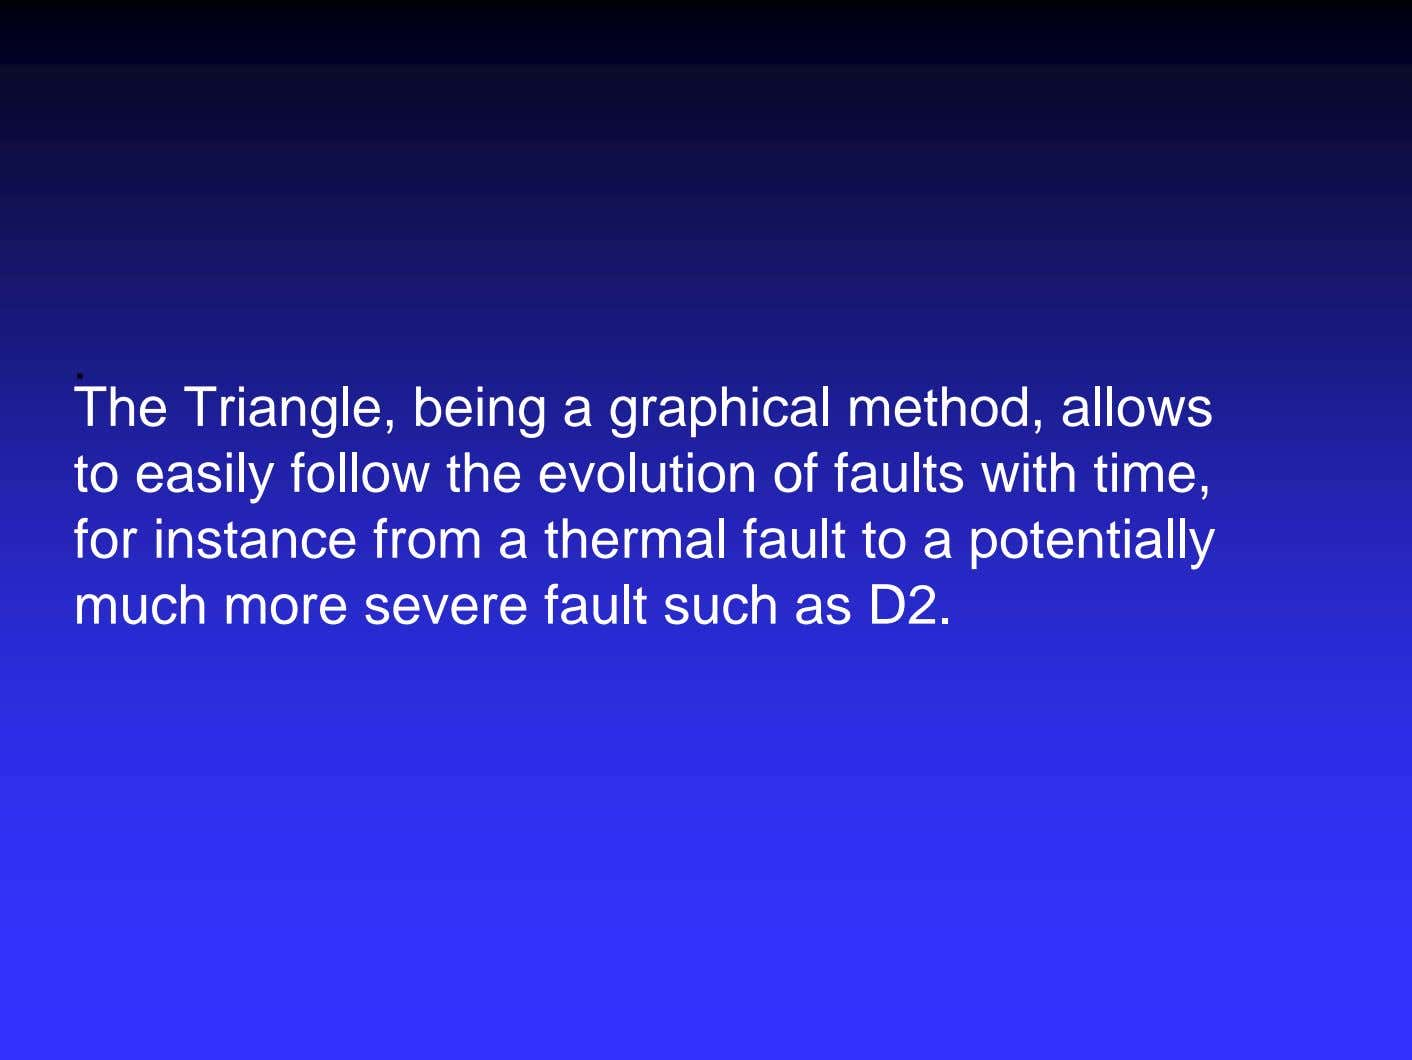 . The Triangle, being a graphical method, allows to easily follow the evolution of faults